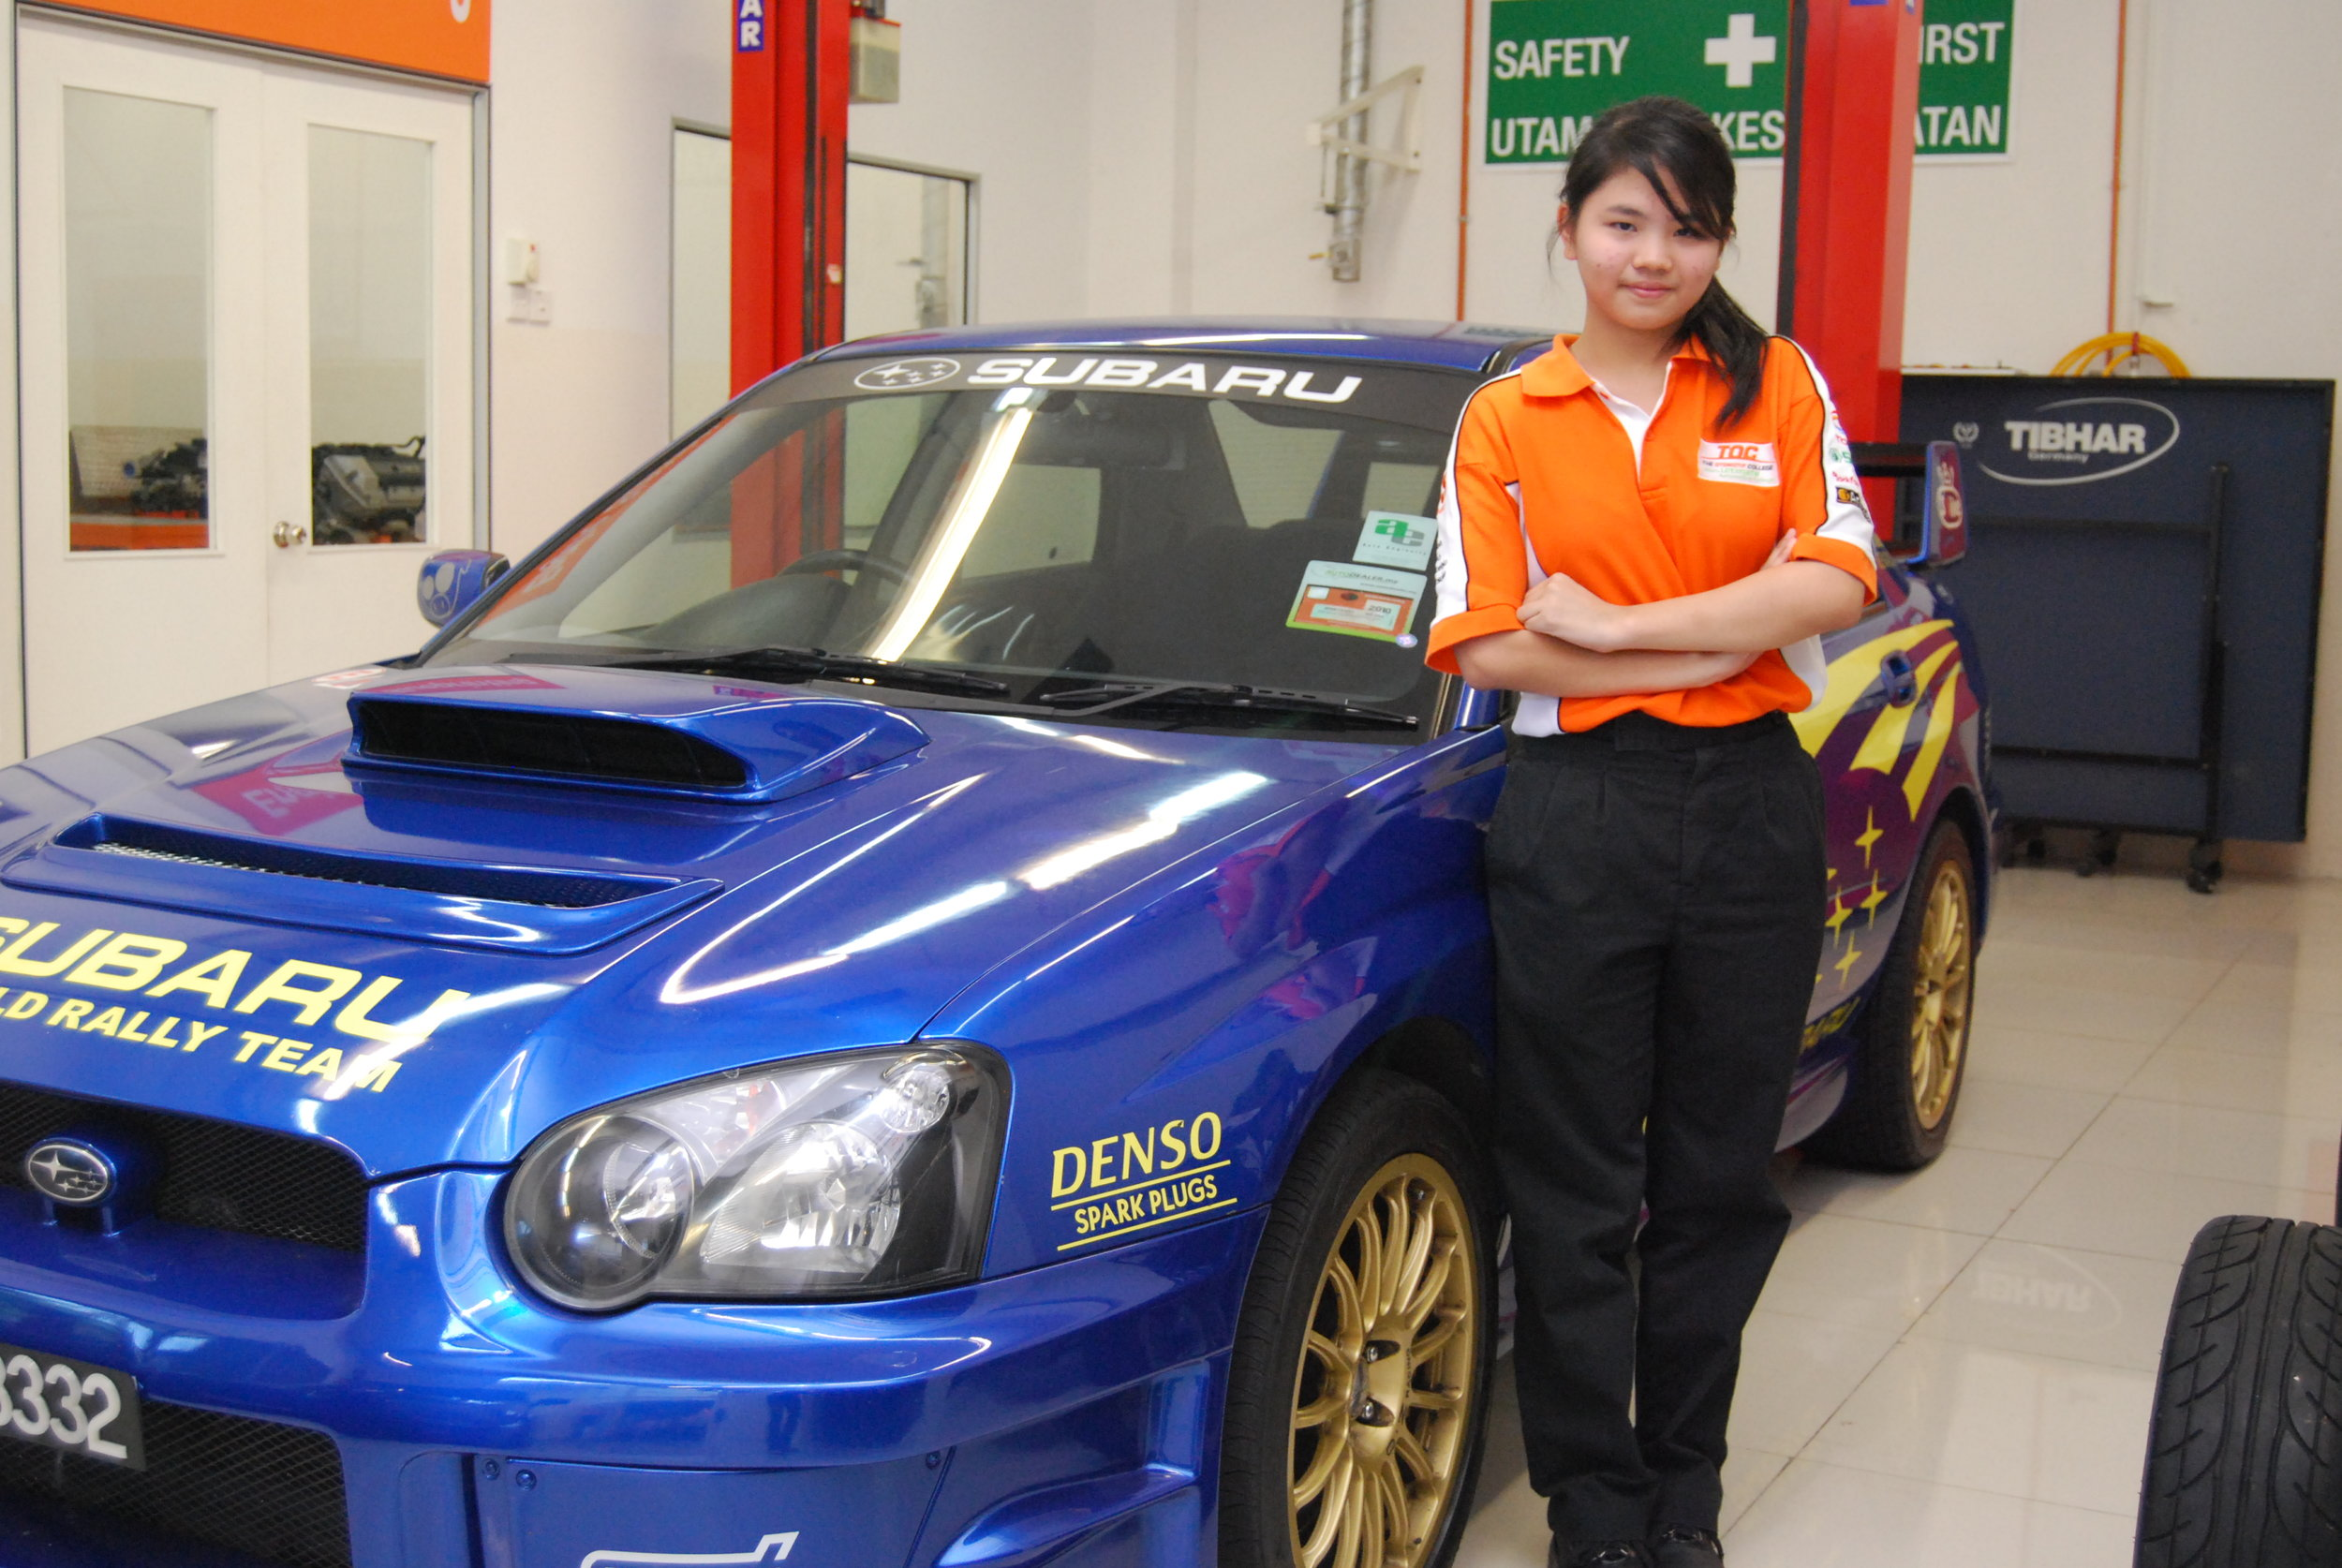 Photo: Who says girls cannot have a place in the automotive industry Chiam, 18, steps up to prove them wrong.